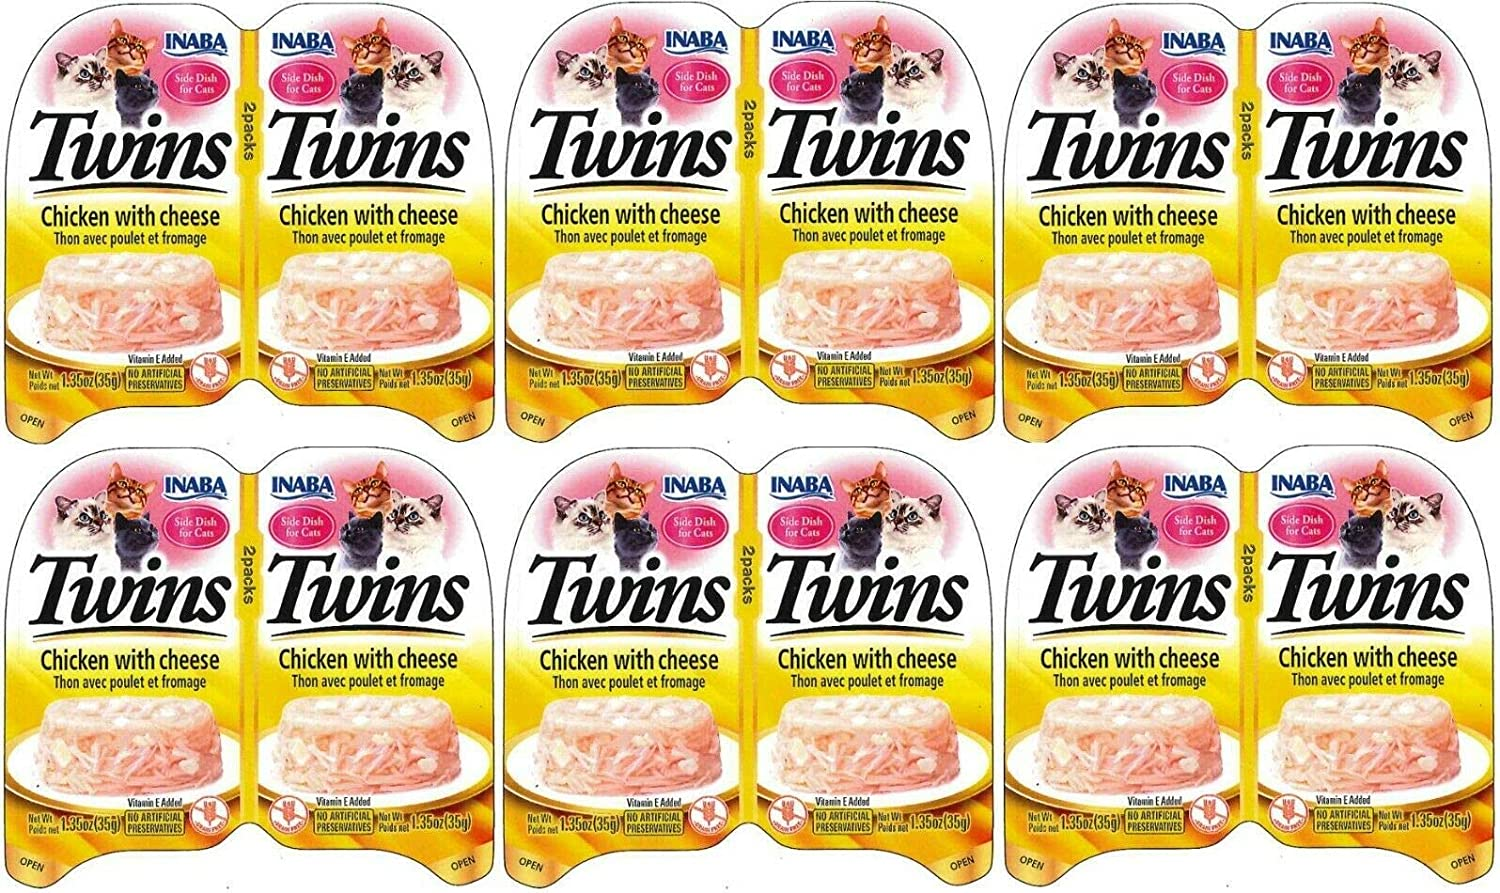 INABA Twins - Shredded Tuna and Chicken Flakes in Savory Tuna Broth Gelée with Scallop, Chicken, Salmon, or Cheese - Side Dish Treat for Cats